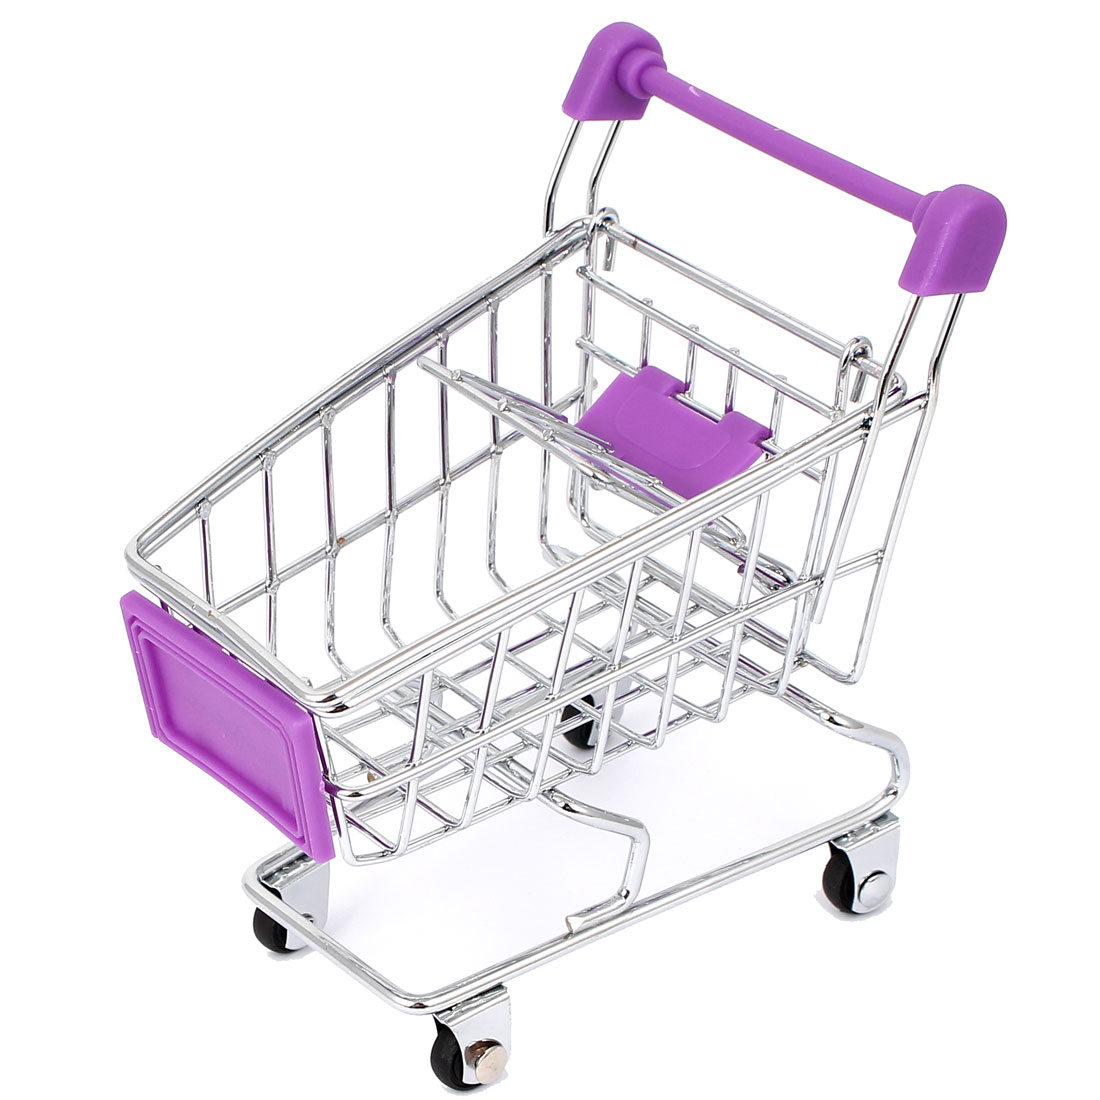 Mini Supermarket Shopping Hand Trolly Cart Model Toy Storage Container Purple